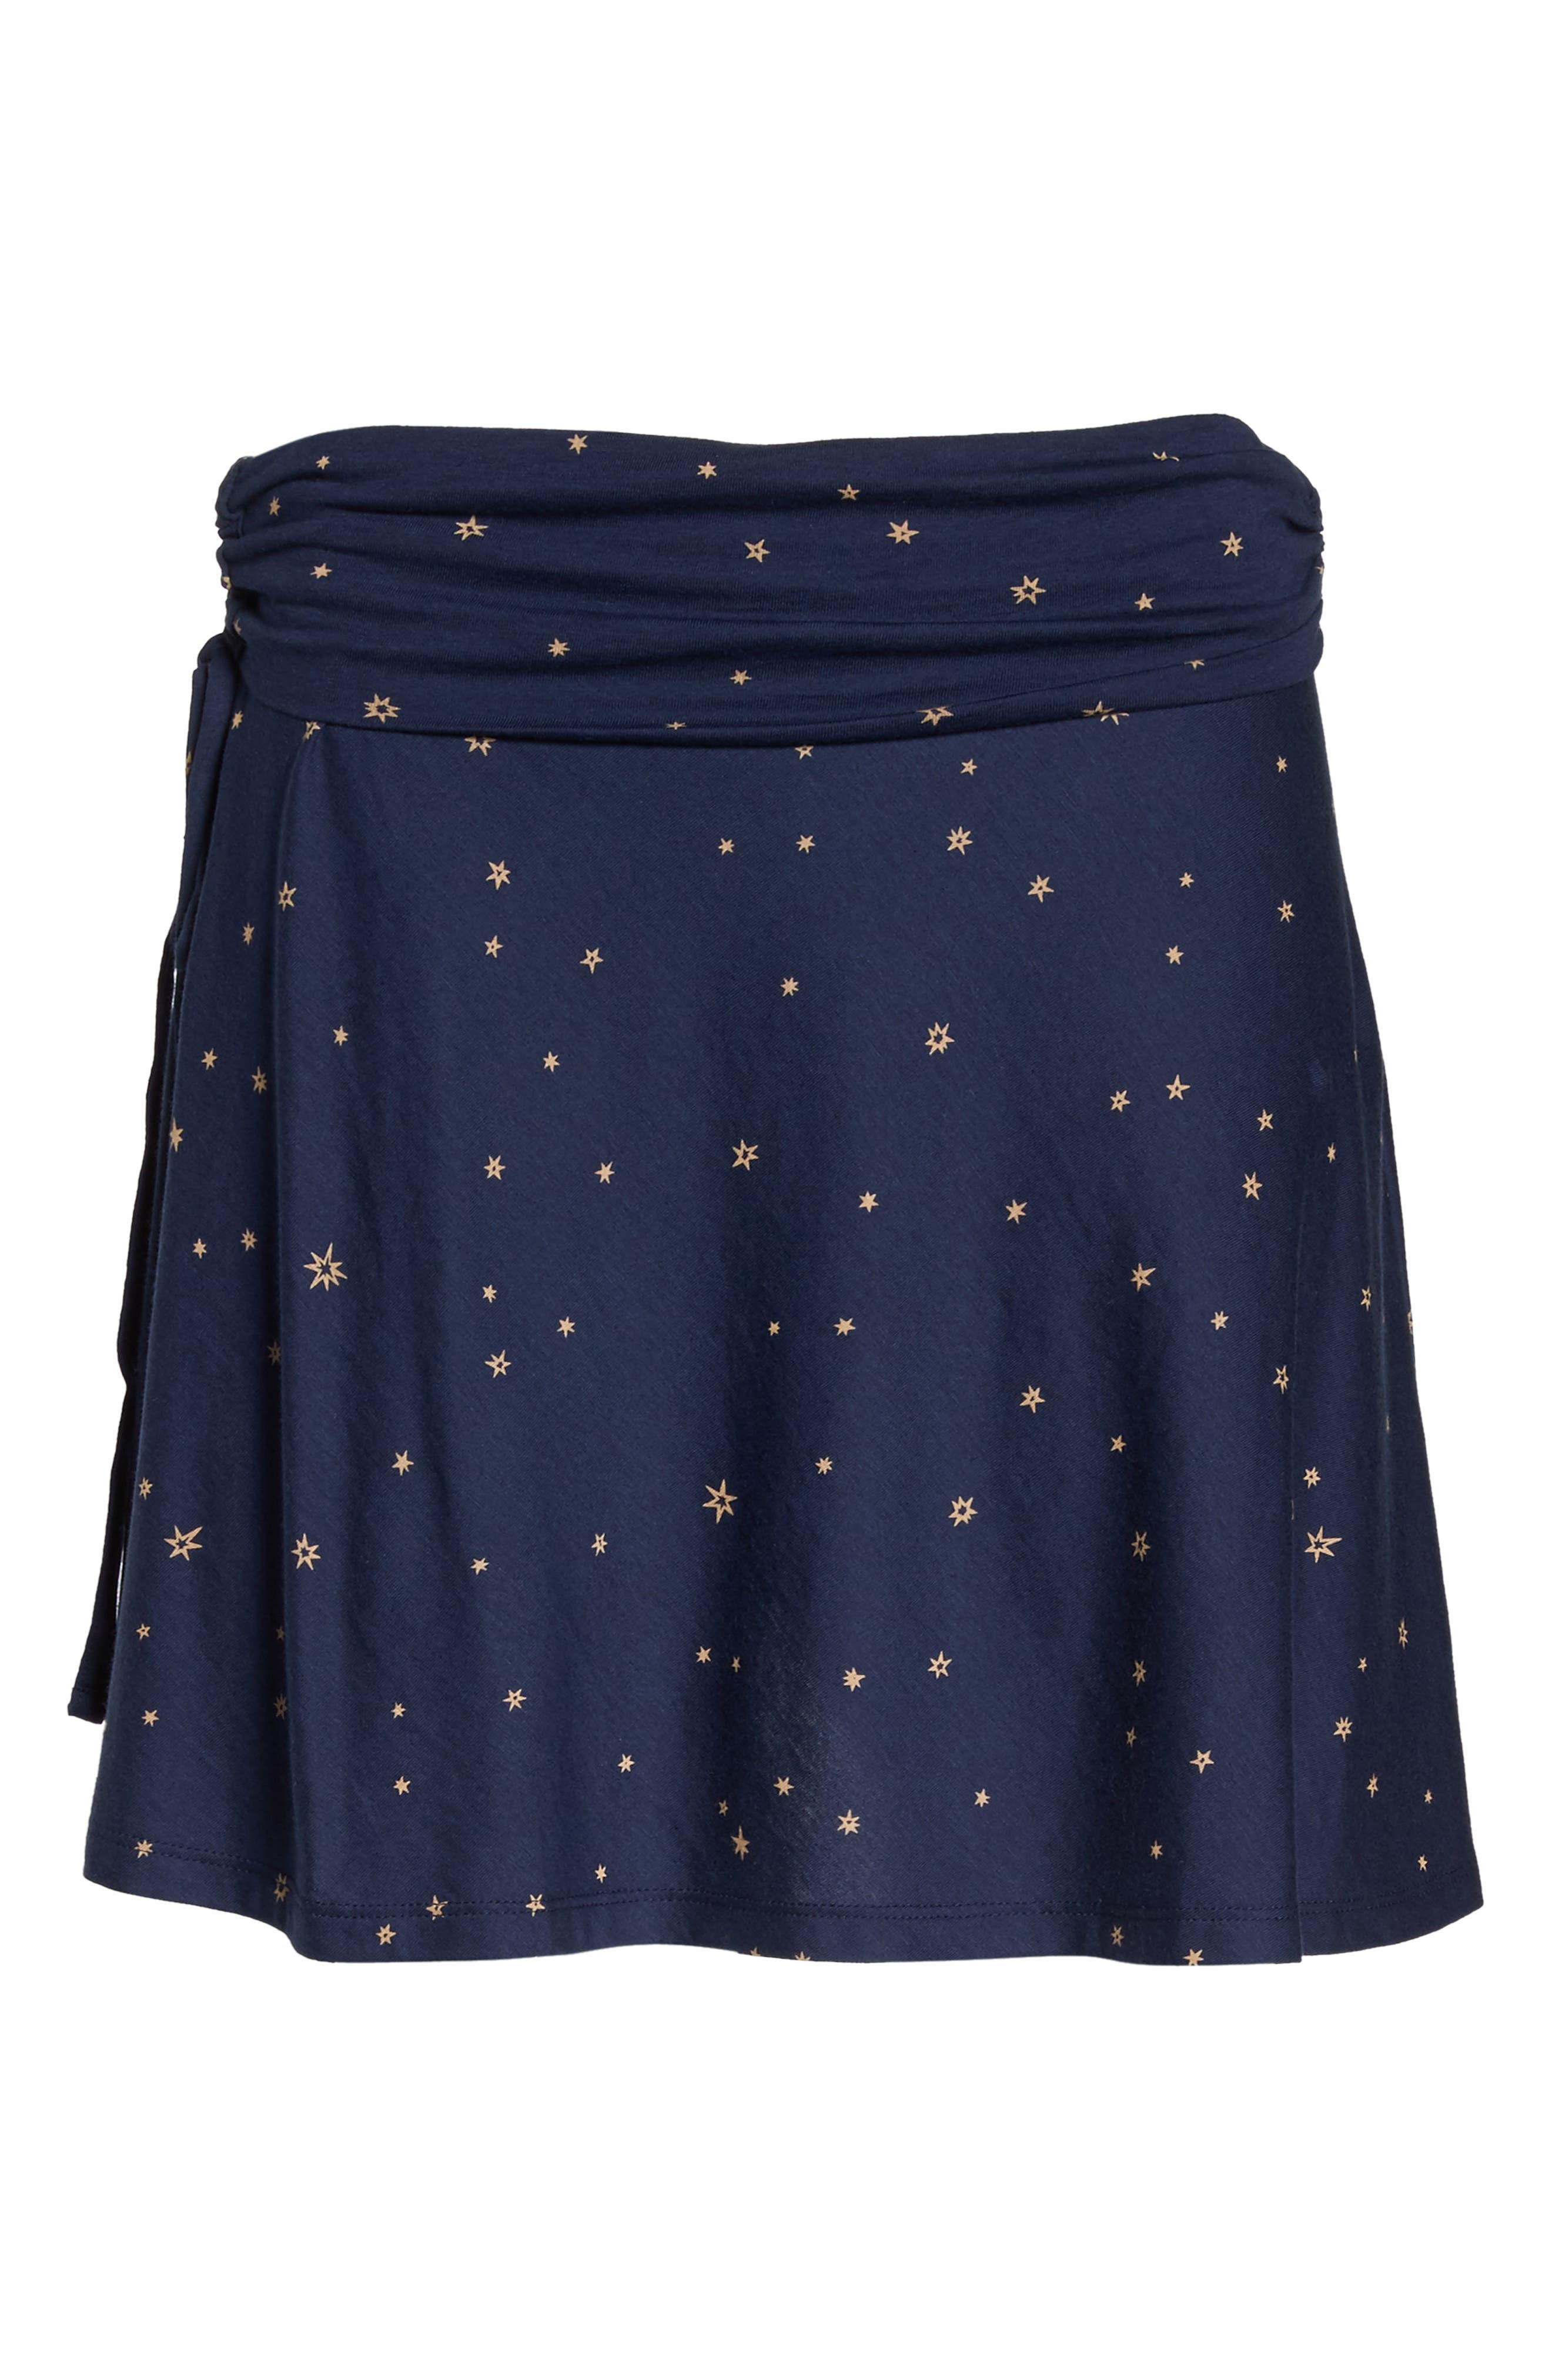 Lithia Cotton Blend Skirt,                             Alternate thumbnail 7, color,                             413